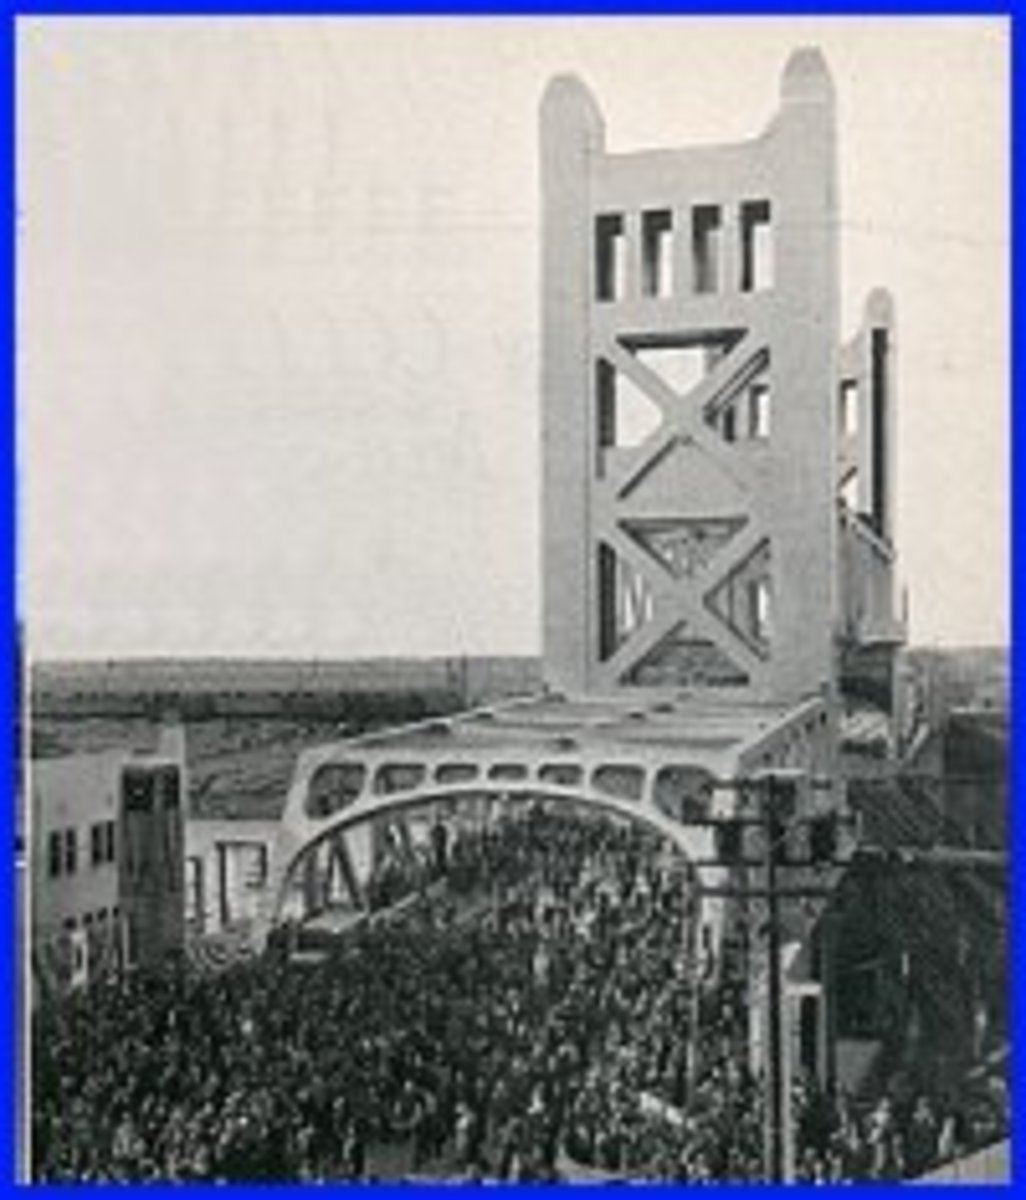 Sacramento Tower Bridge Dedication: 1935